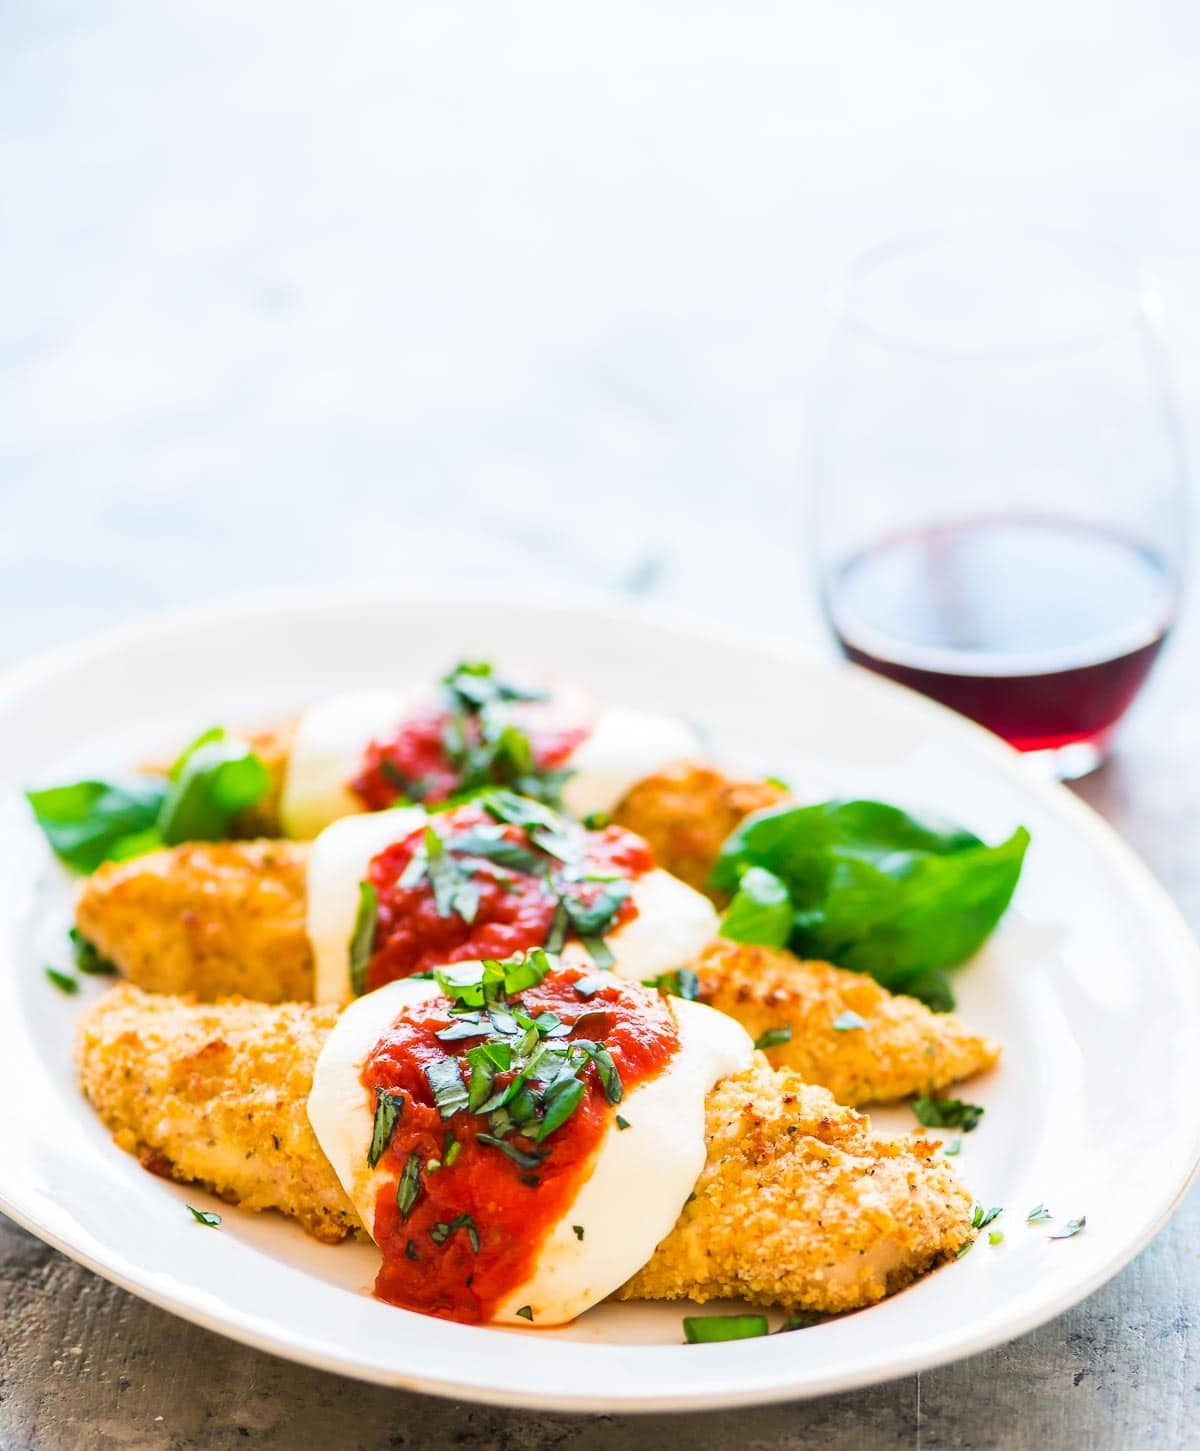 Skinny Baked Chicken Parmesan. The BEST! Easy, healthy recipe that our whole family loves. Recipe at wellplated.com | @wellplated